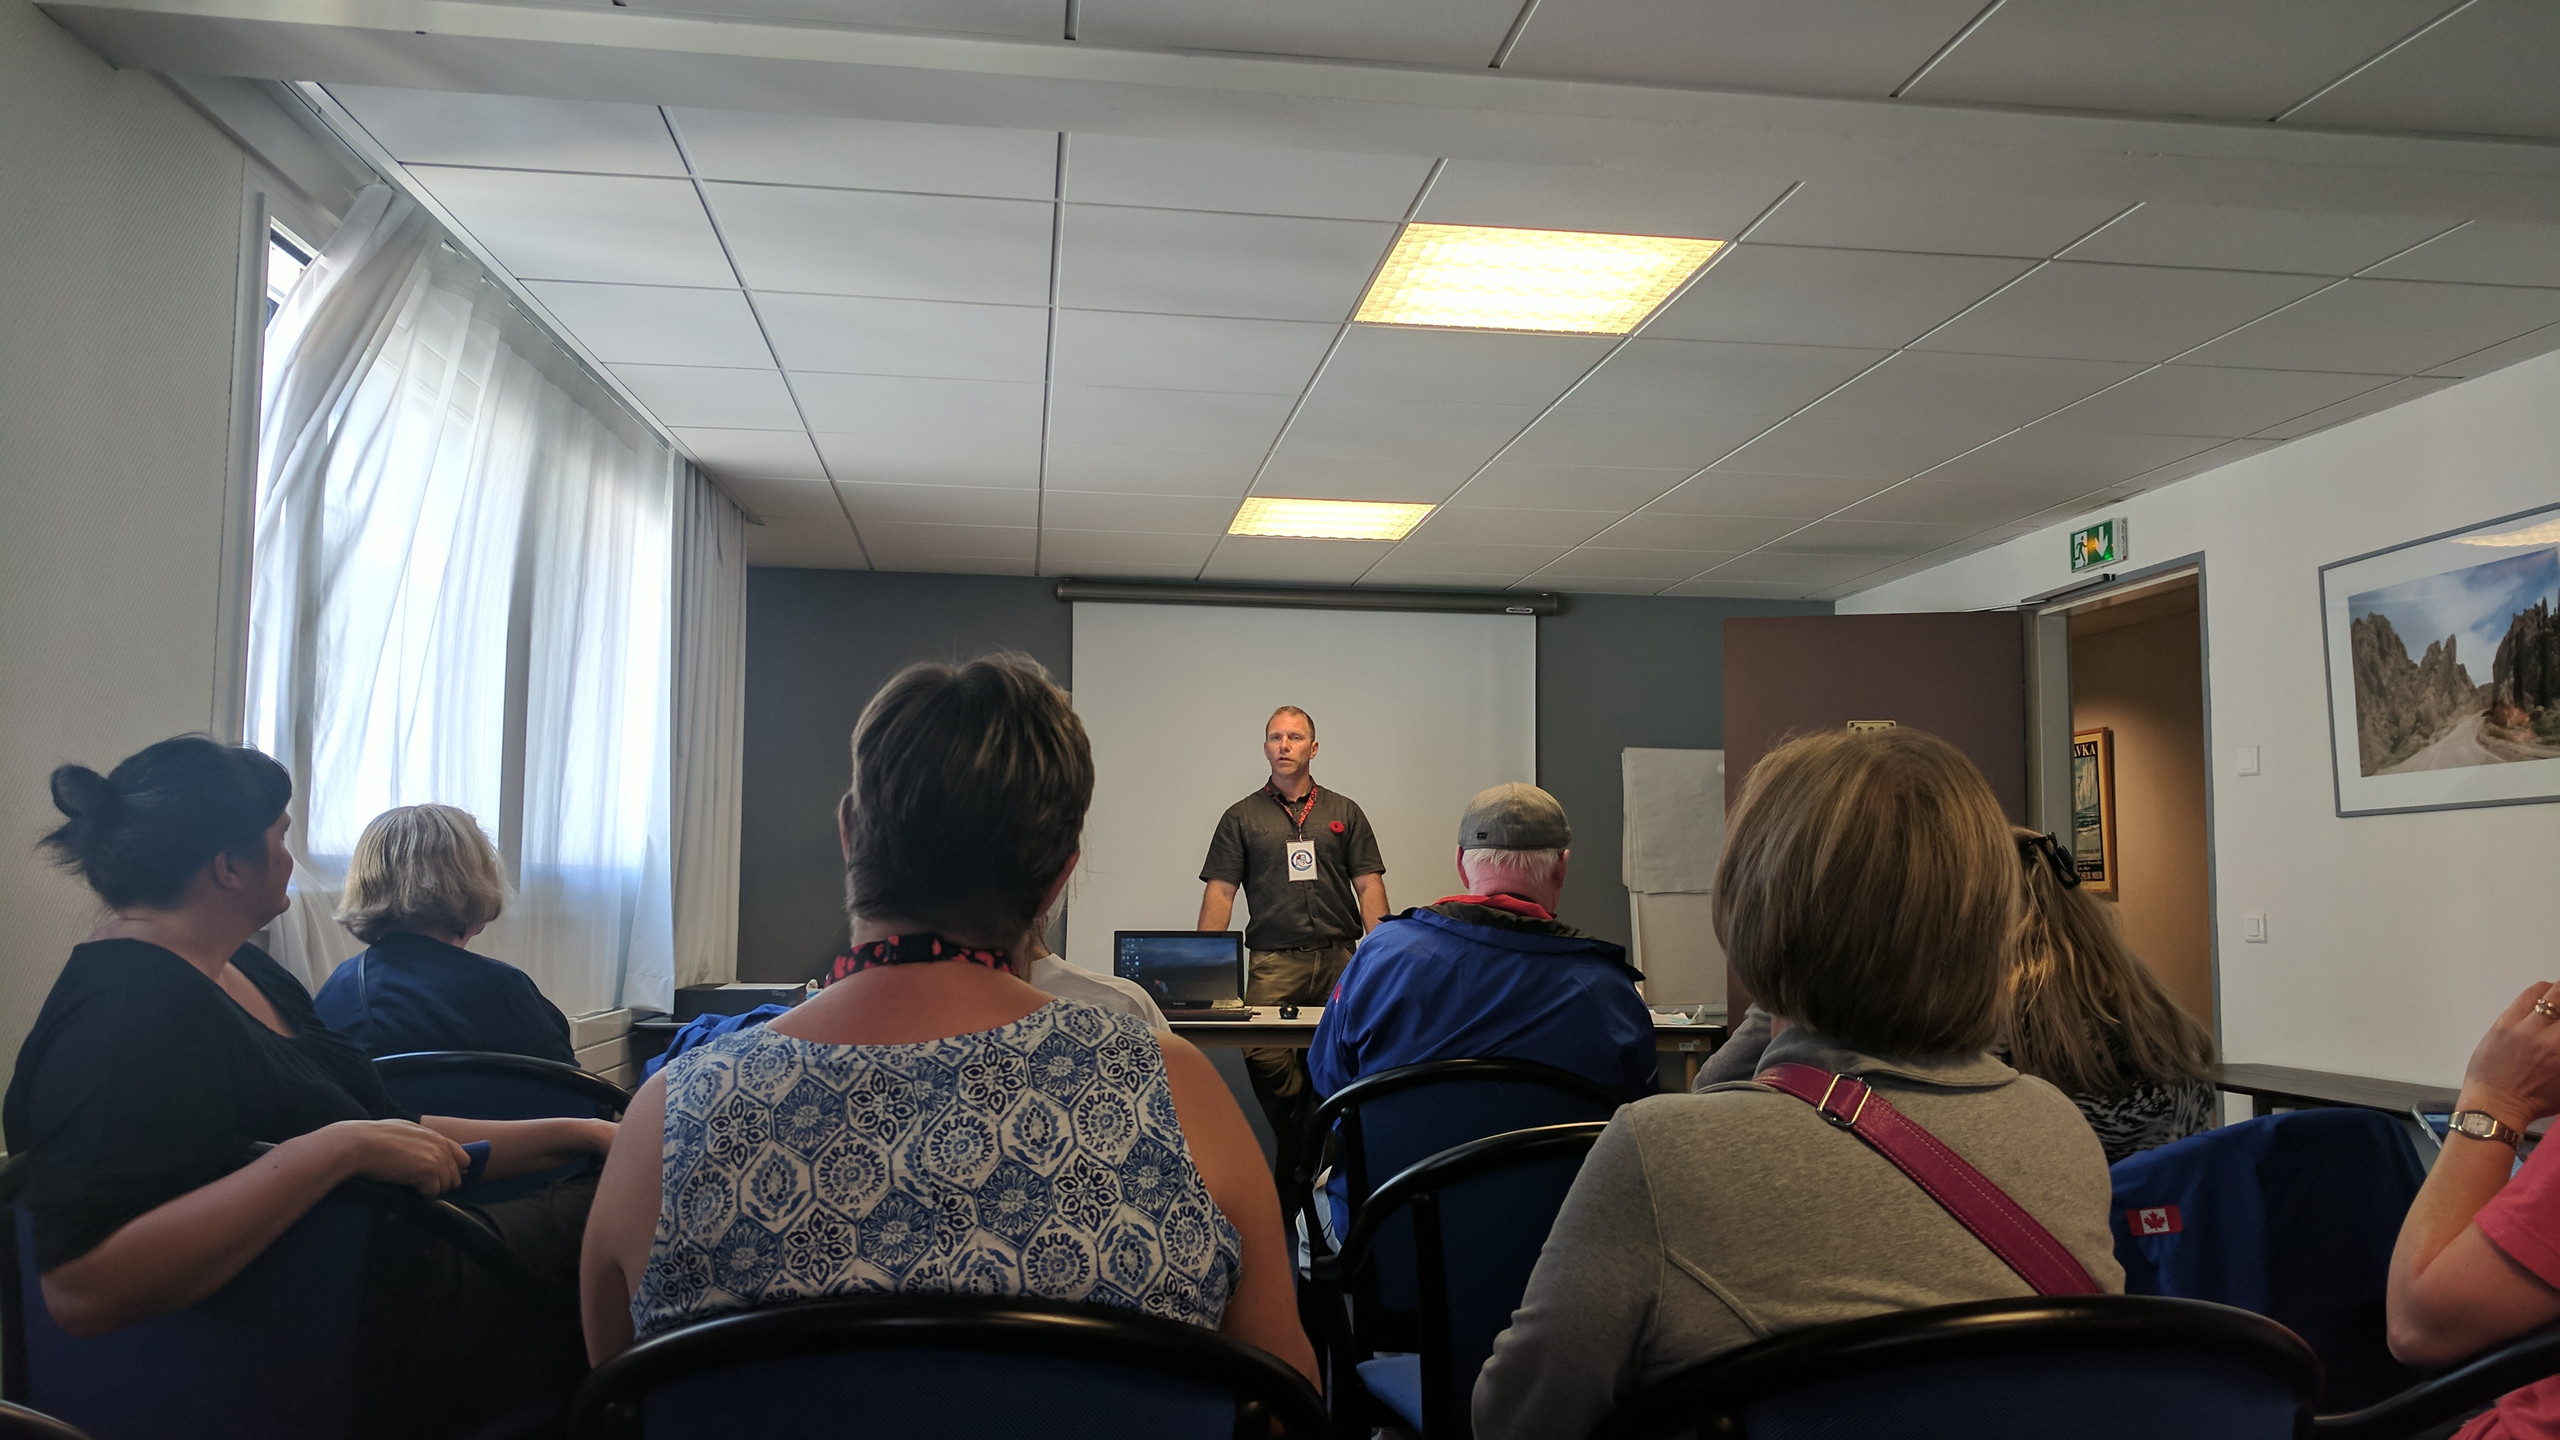 The Dieppe 75, Every Man Remembered Tour, in August 2017, came with many highlights - a favourite of mine was Mark's info session  - sharing his insight & resources on researching family ties to Canadian military history.